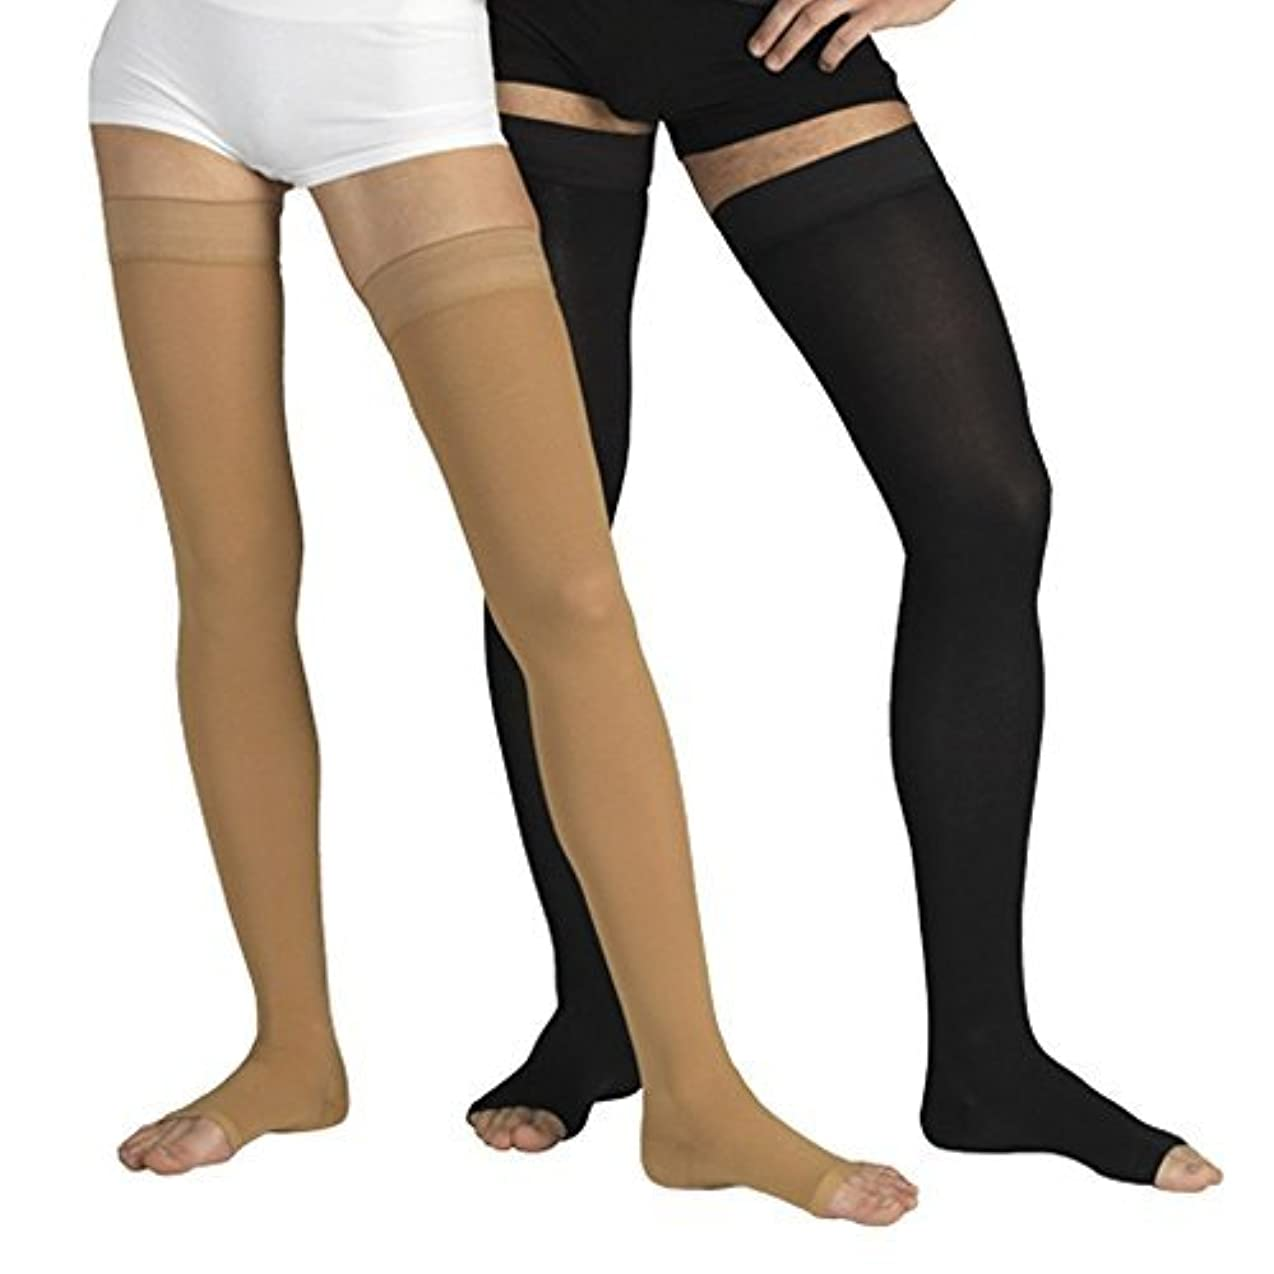 思い出させるワイド指定するINFINITUM MEDICAL COMPRESSION Stockings with OPEN Toe, FIRM Grade Class I or II, Thigh High Support Socks without...